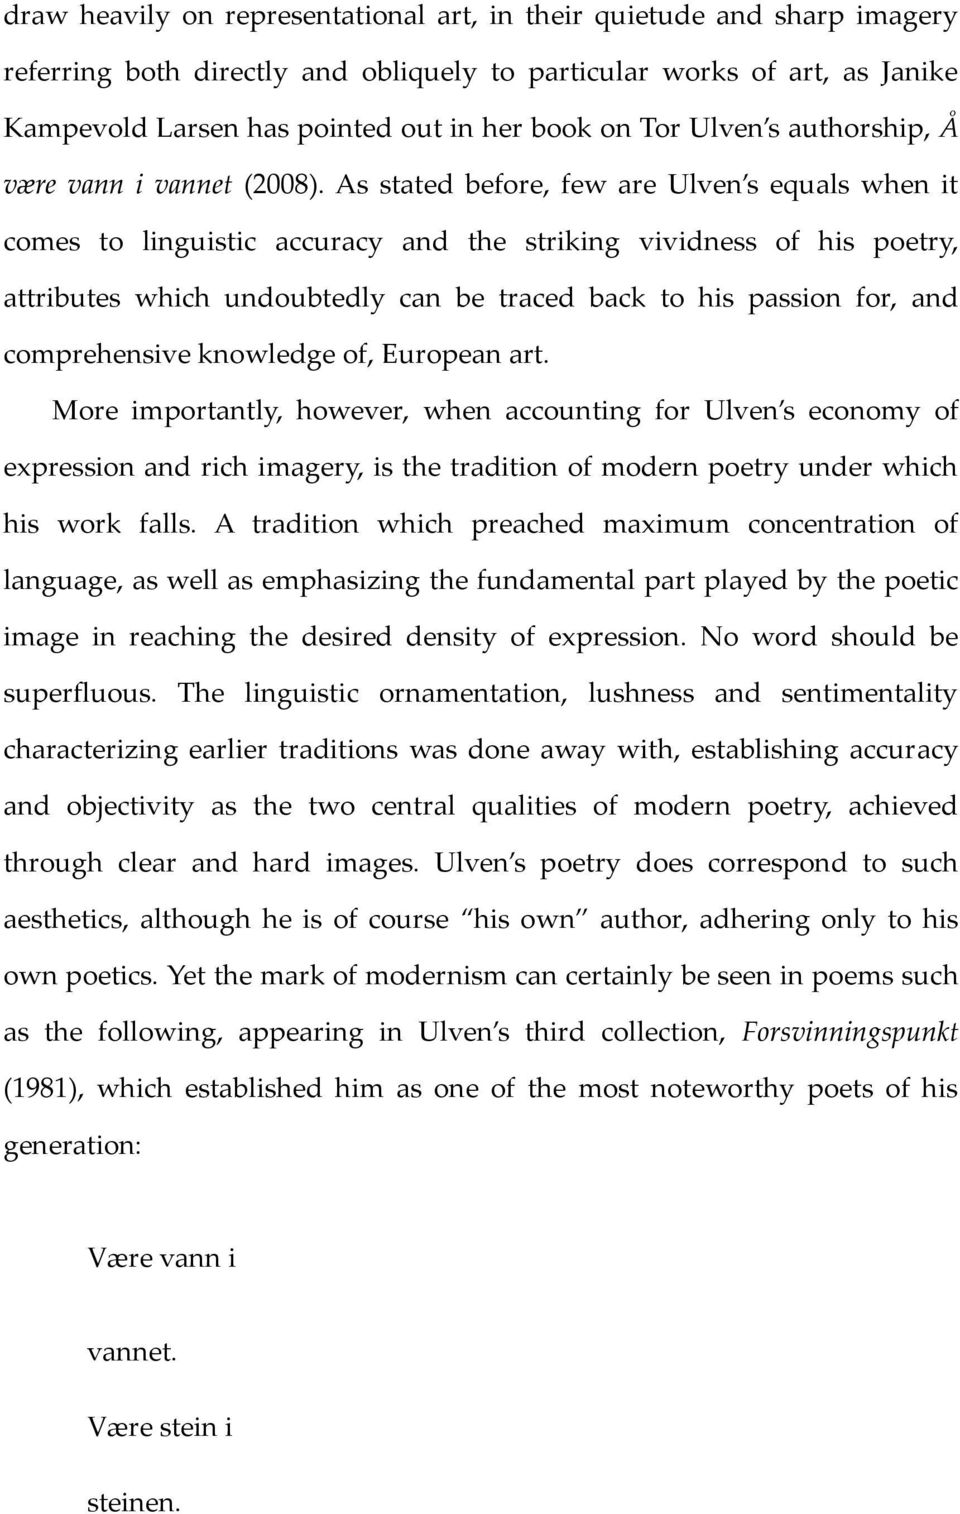 As stated before, few are Ulven s equals when it comes to linguistic accuracy and the striking vividness of his poetry, attributes which undoubtedly can be traced back to his passion for, and